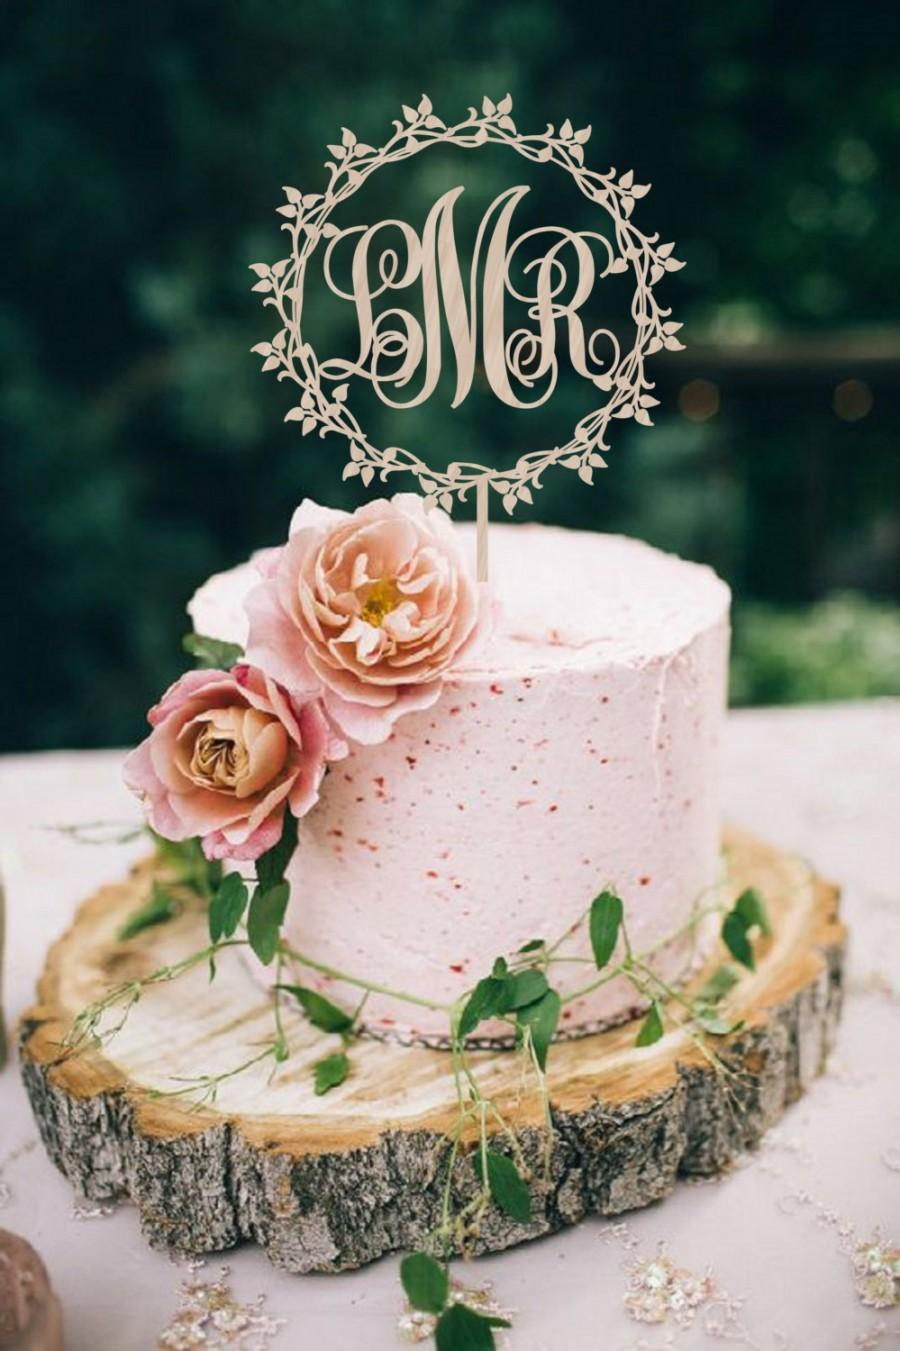 Mariage - Wedding Cake Topper Monogram  Wreath Wedding Cake Topper Initial    Personalized  Wedding Cake Topper  Wood Cake Topper